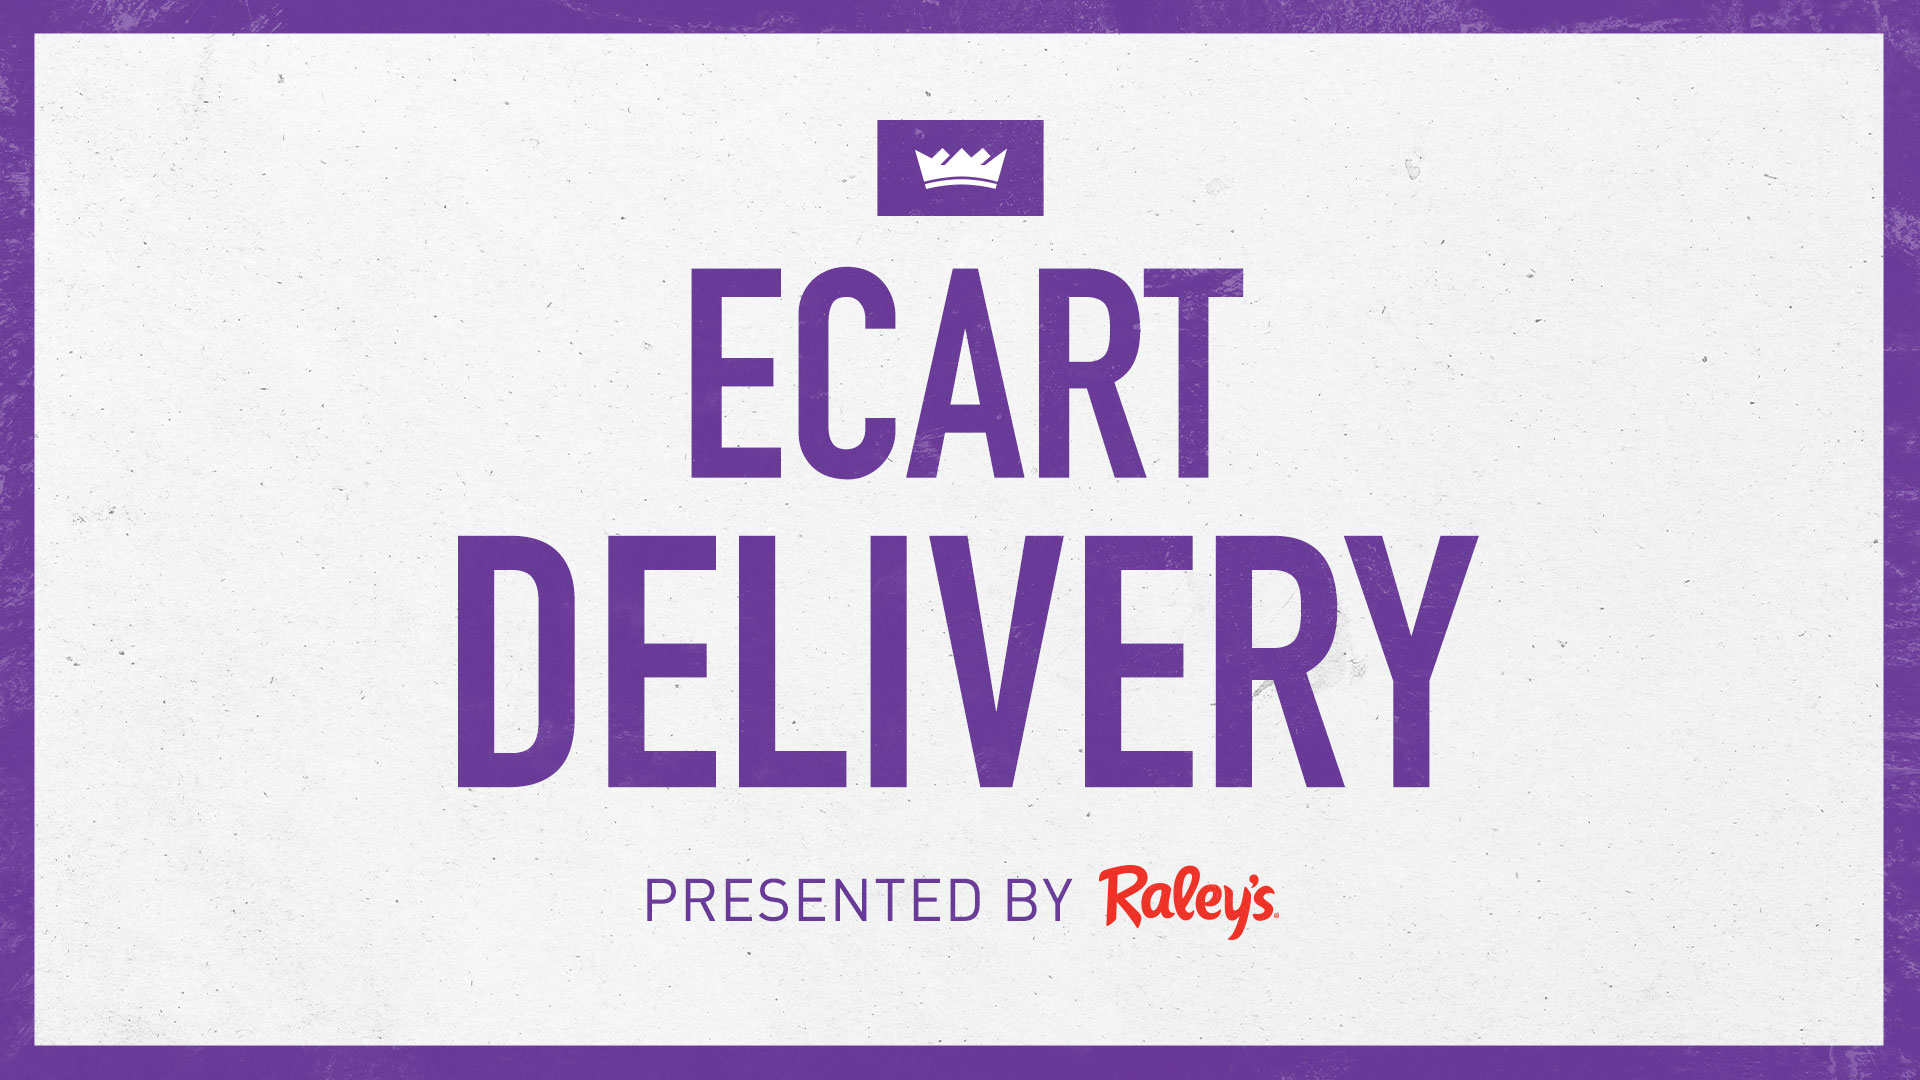 Raley's eCart Delivery